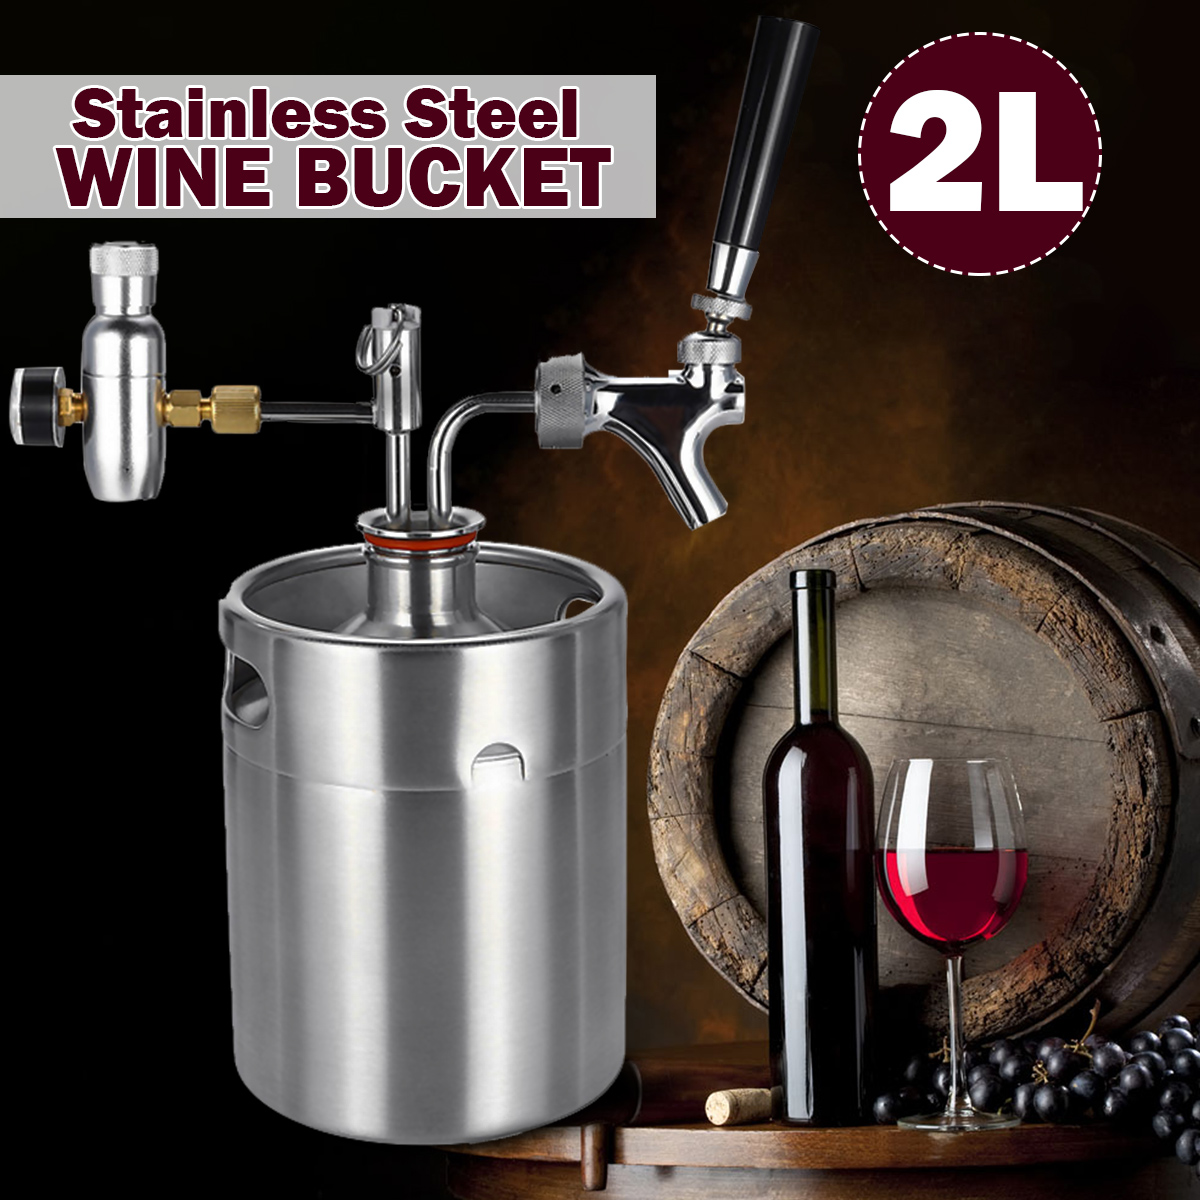 2L Home Wine Beer Brewing Craft Beer Dispenser Growler Beer Keg System Mini Stainless Steel Beer Keg With Faucet Pressurized image